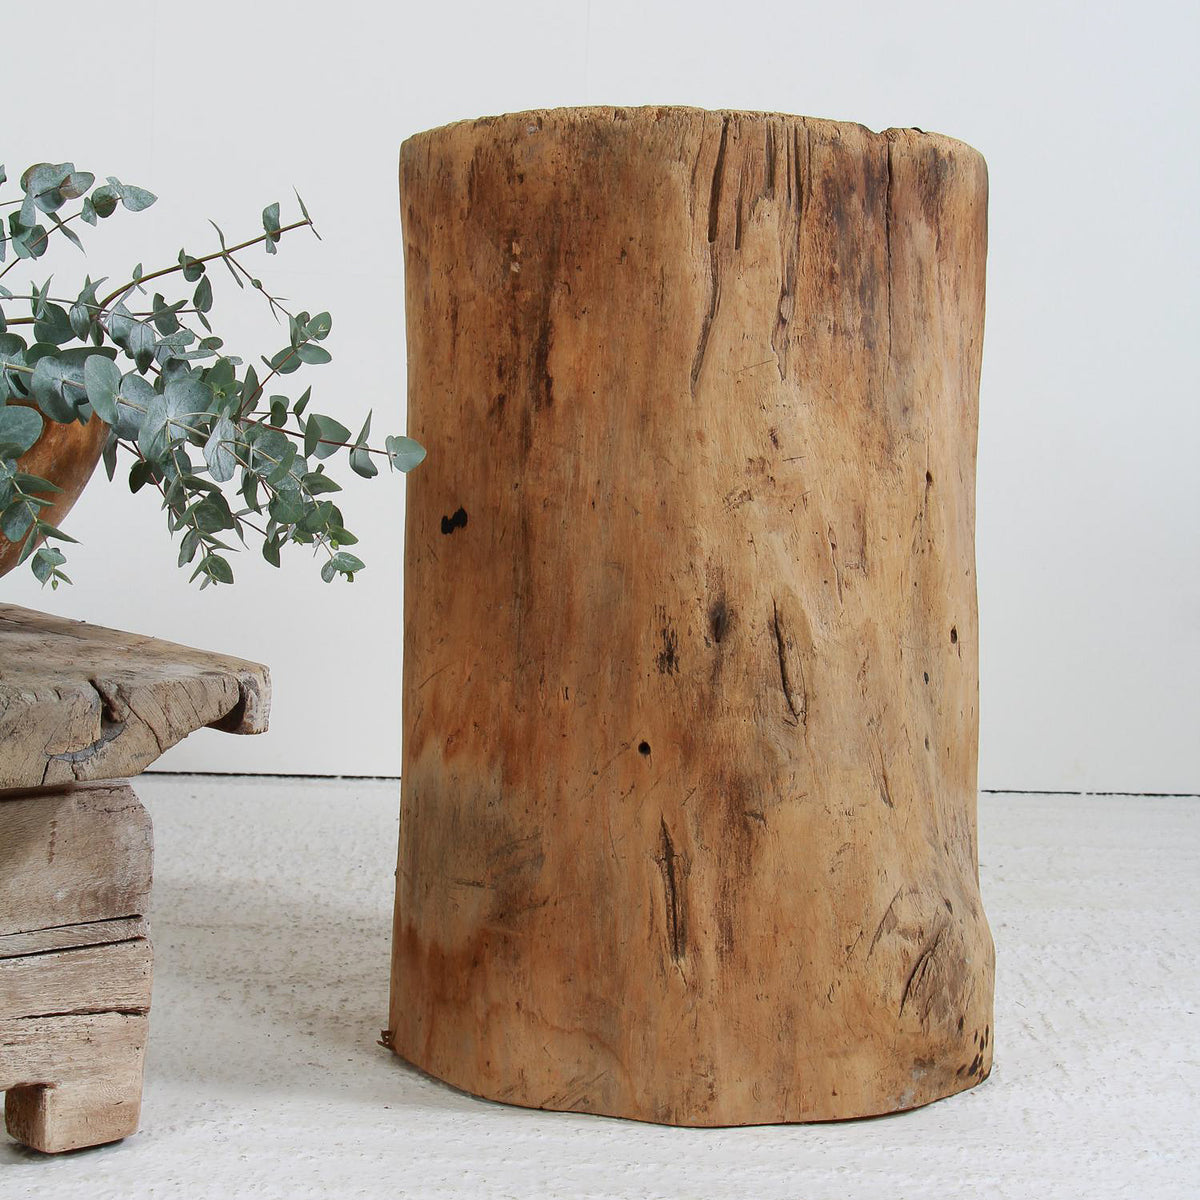 Sculptural 19thC European Tree Stump Planter